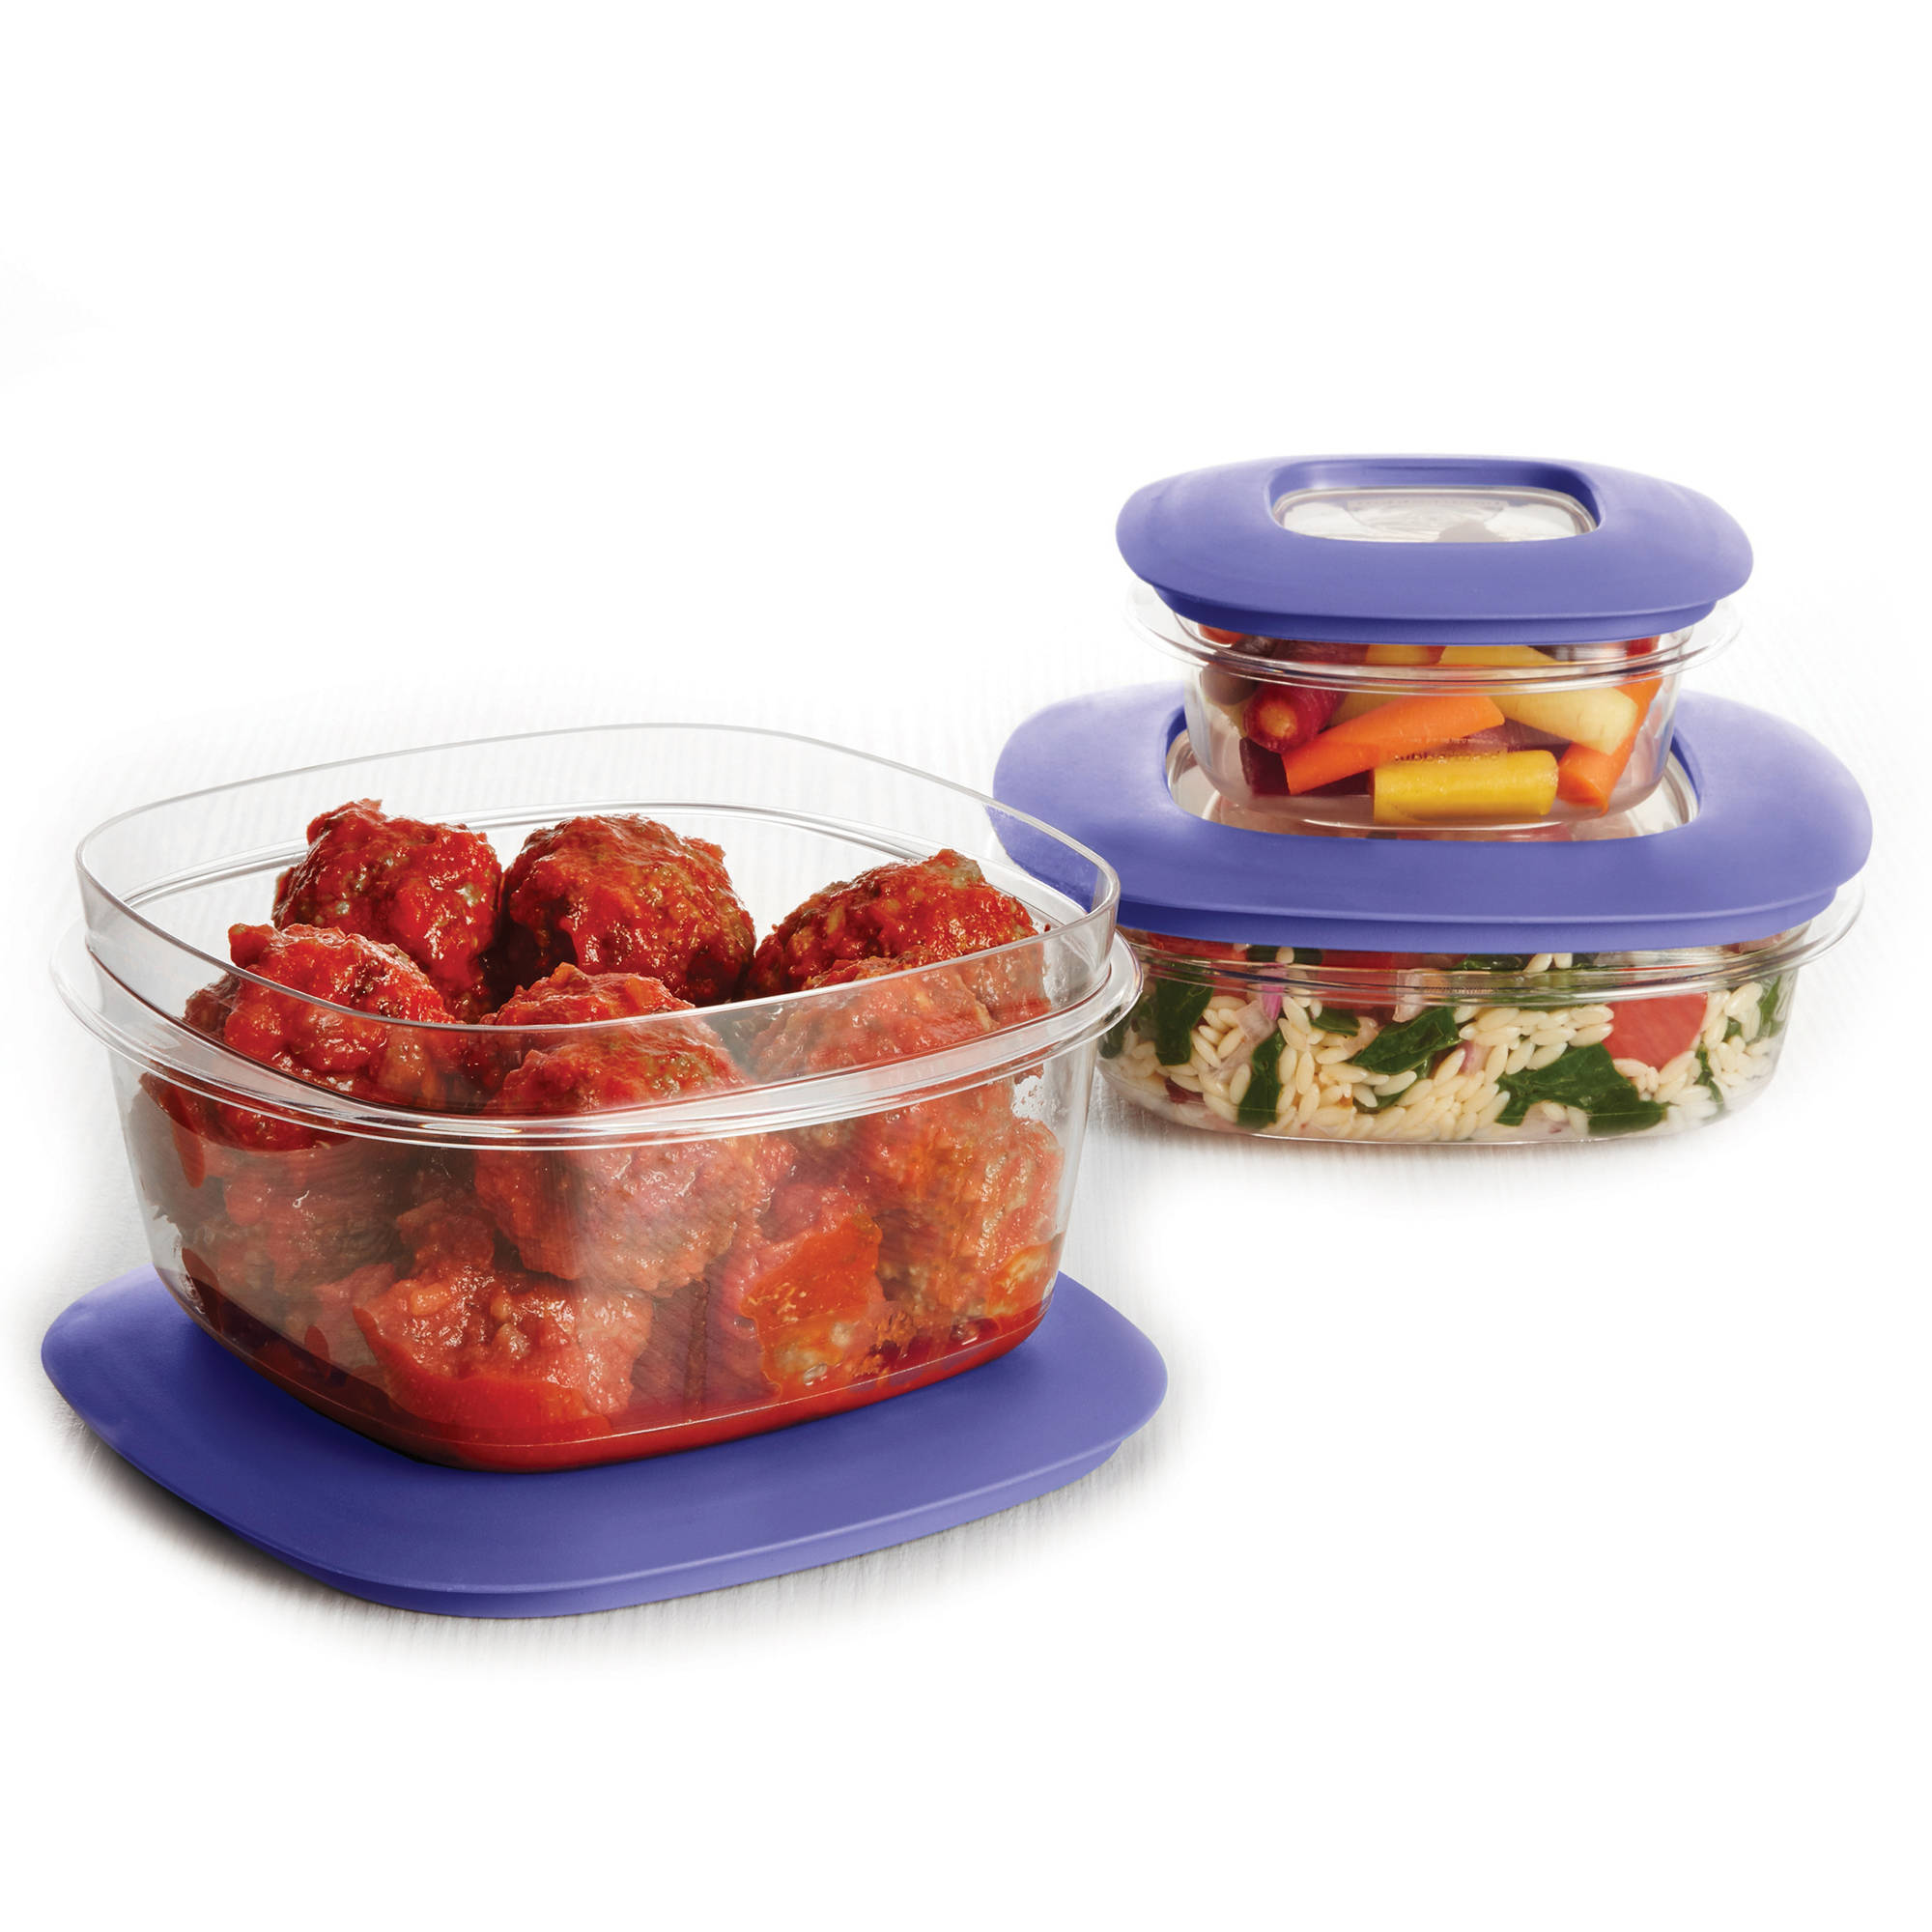 Rubbermaid premier food storage containers best storage for Premier cuisine